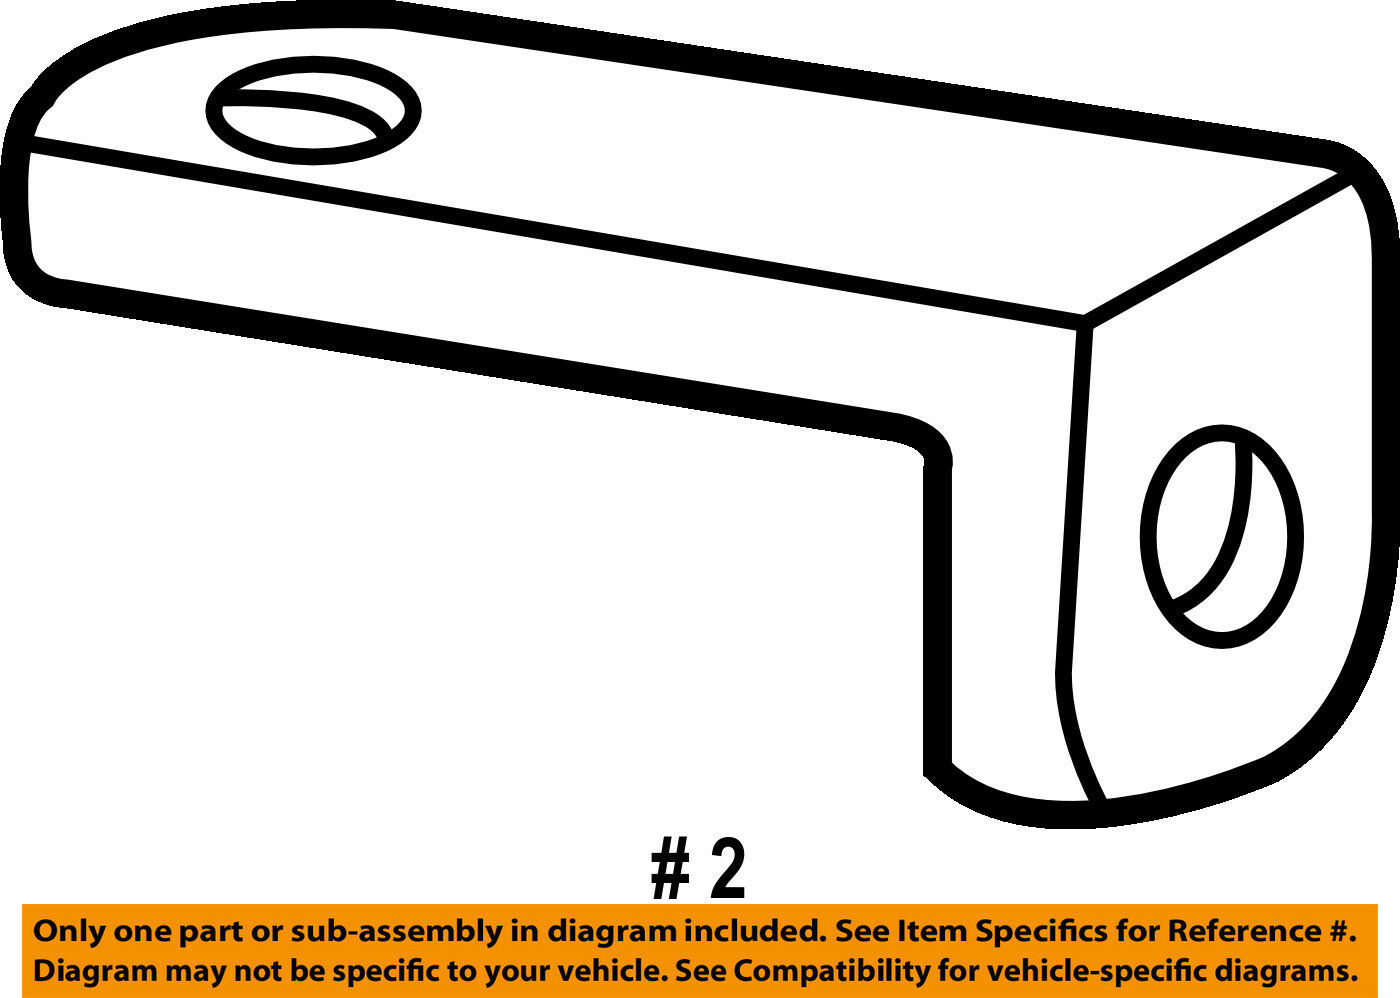 Ford Oem 01 05 Explorer Sport Trac Fender Rear Bracket Right 2005 Engine Diagram 1l5z16c076aa 1 Of 2only 0 Available